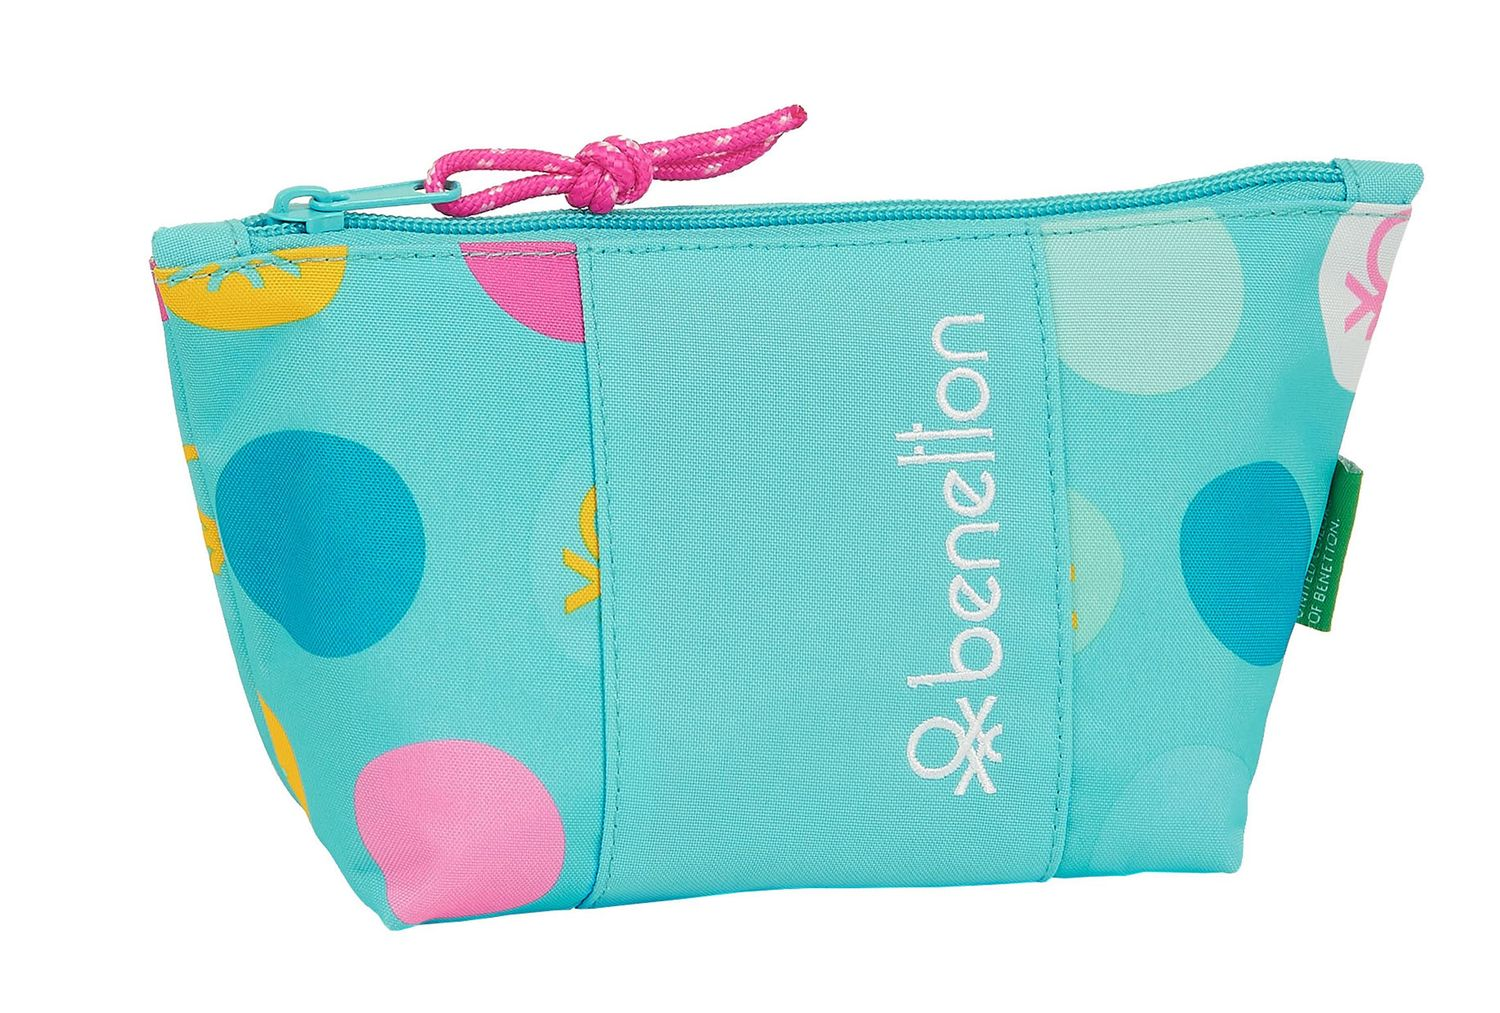 BENETTON Turquoise POLKA DOTS Make Up Toiletry Bag – image 1